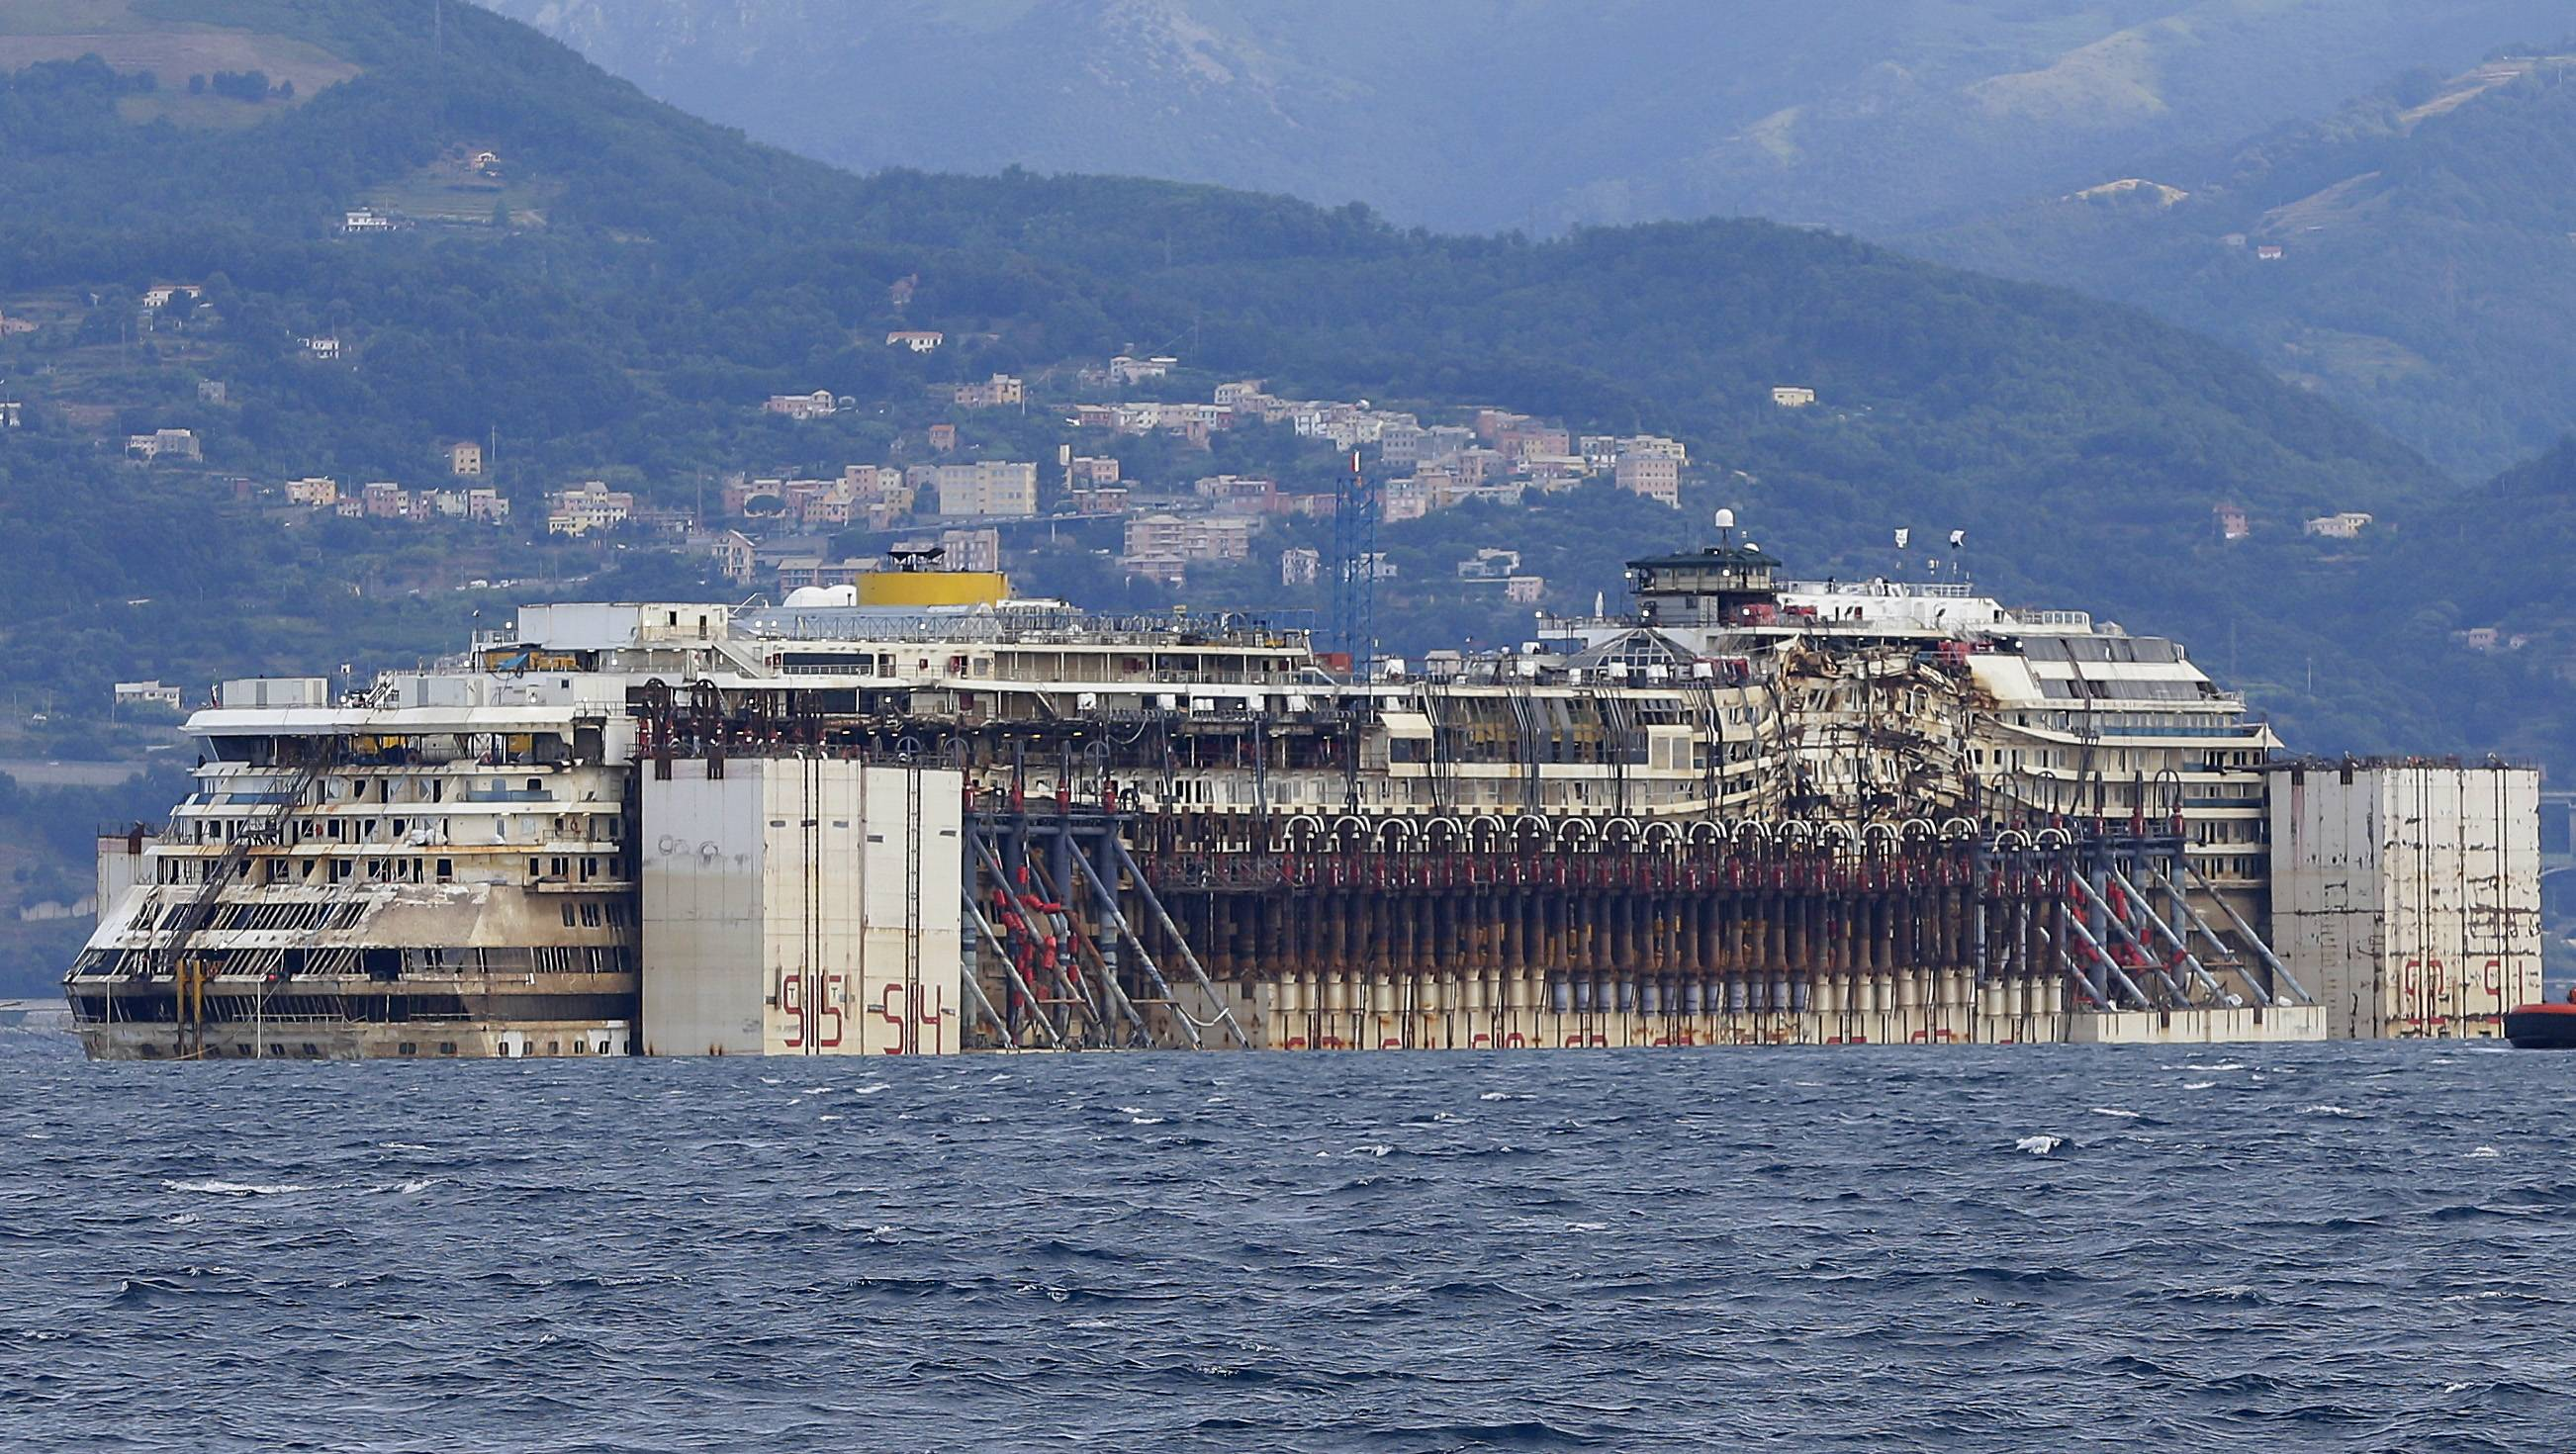 The wreck of the Costa Concordia cruise ship is towed by tugboats towards Genoa's harbor, Italy, Sunday. The luxury liner struck a reef when its captain sailed too close to Giglio Island off Tuscany's coast Jan. 13, 2012, and capsized, killing 32 people.